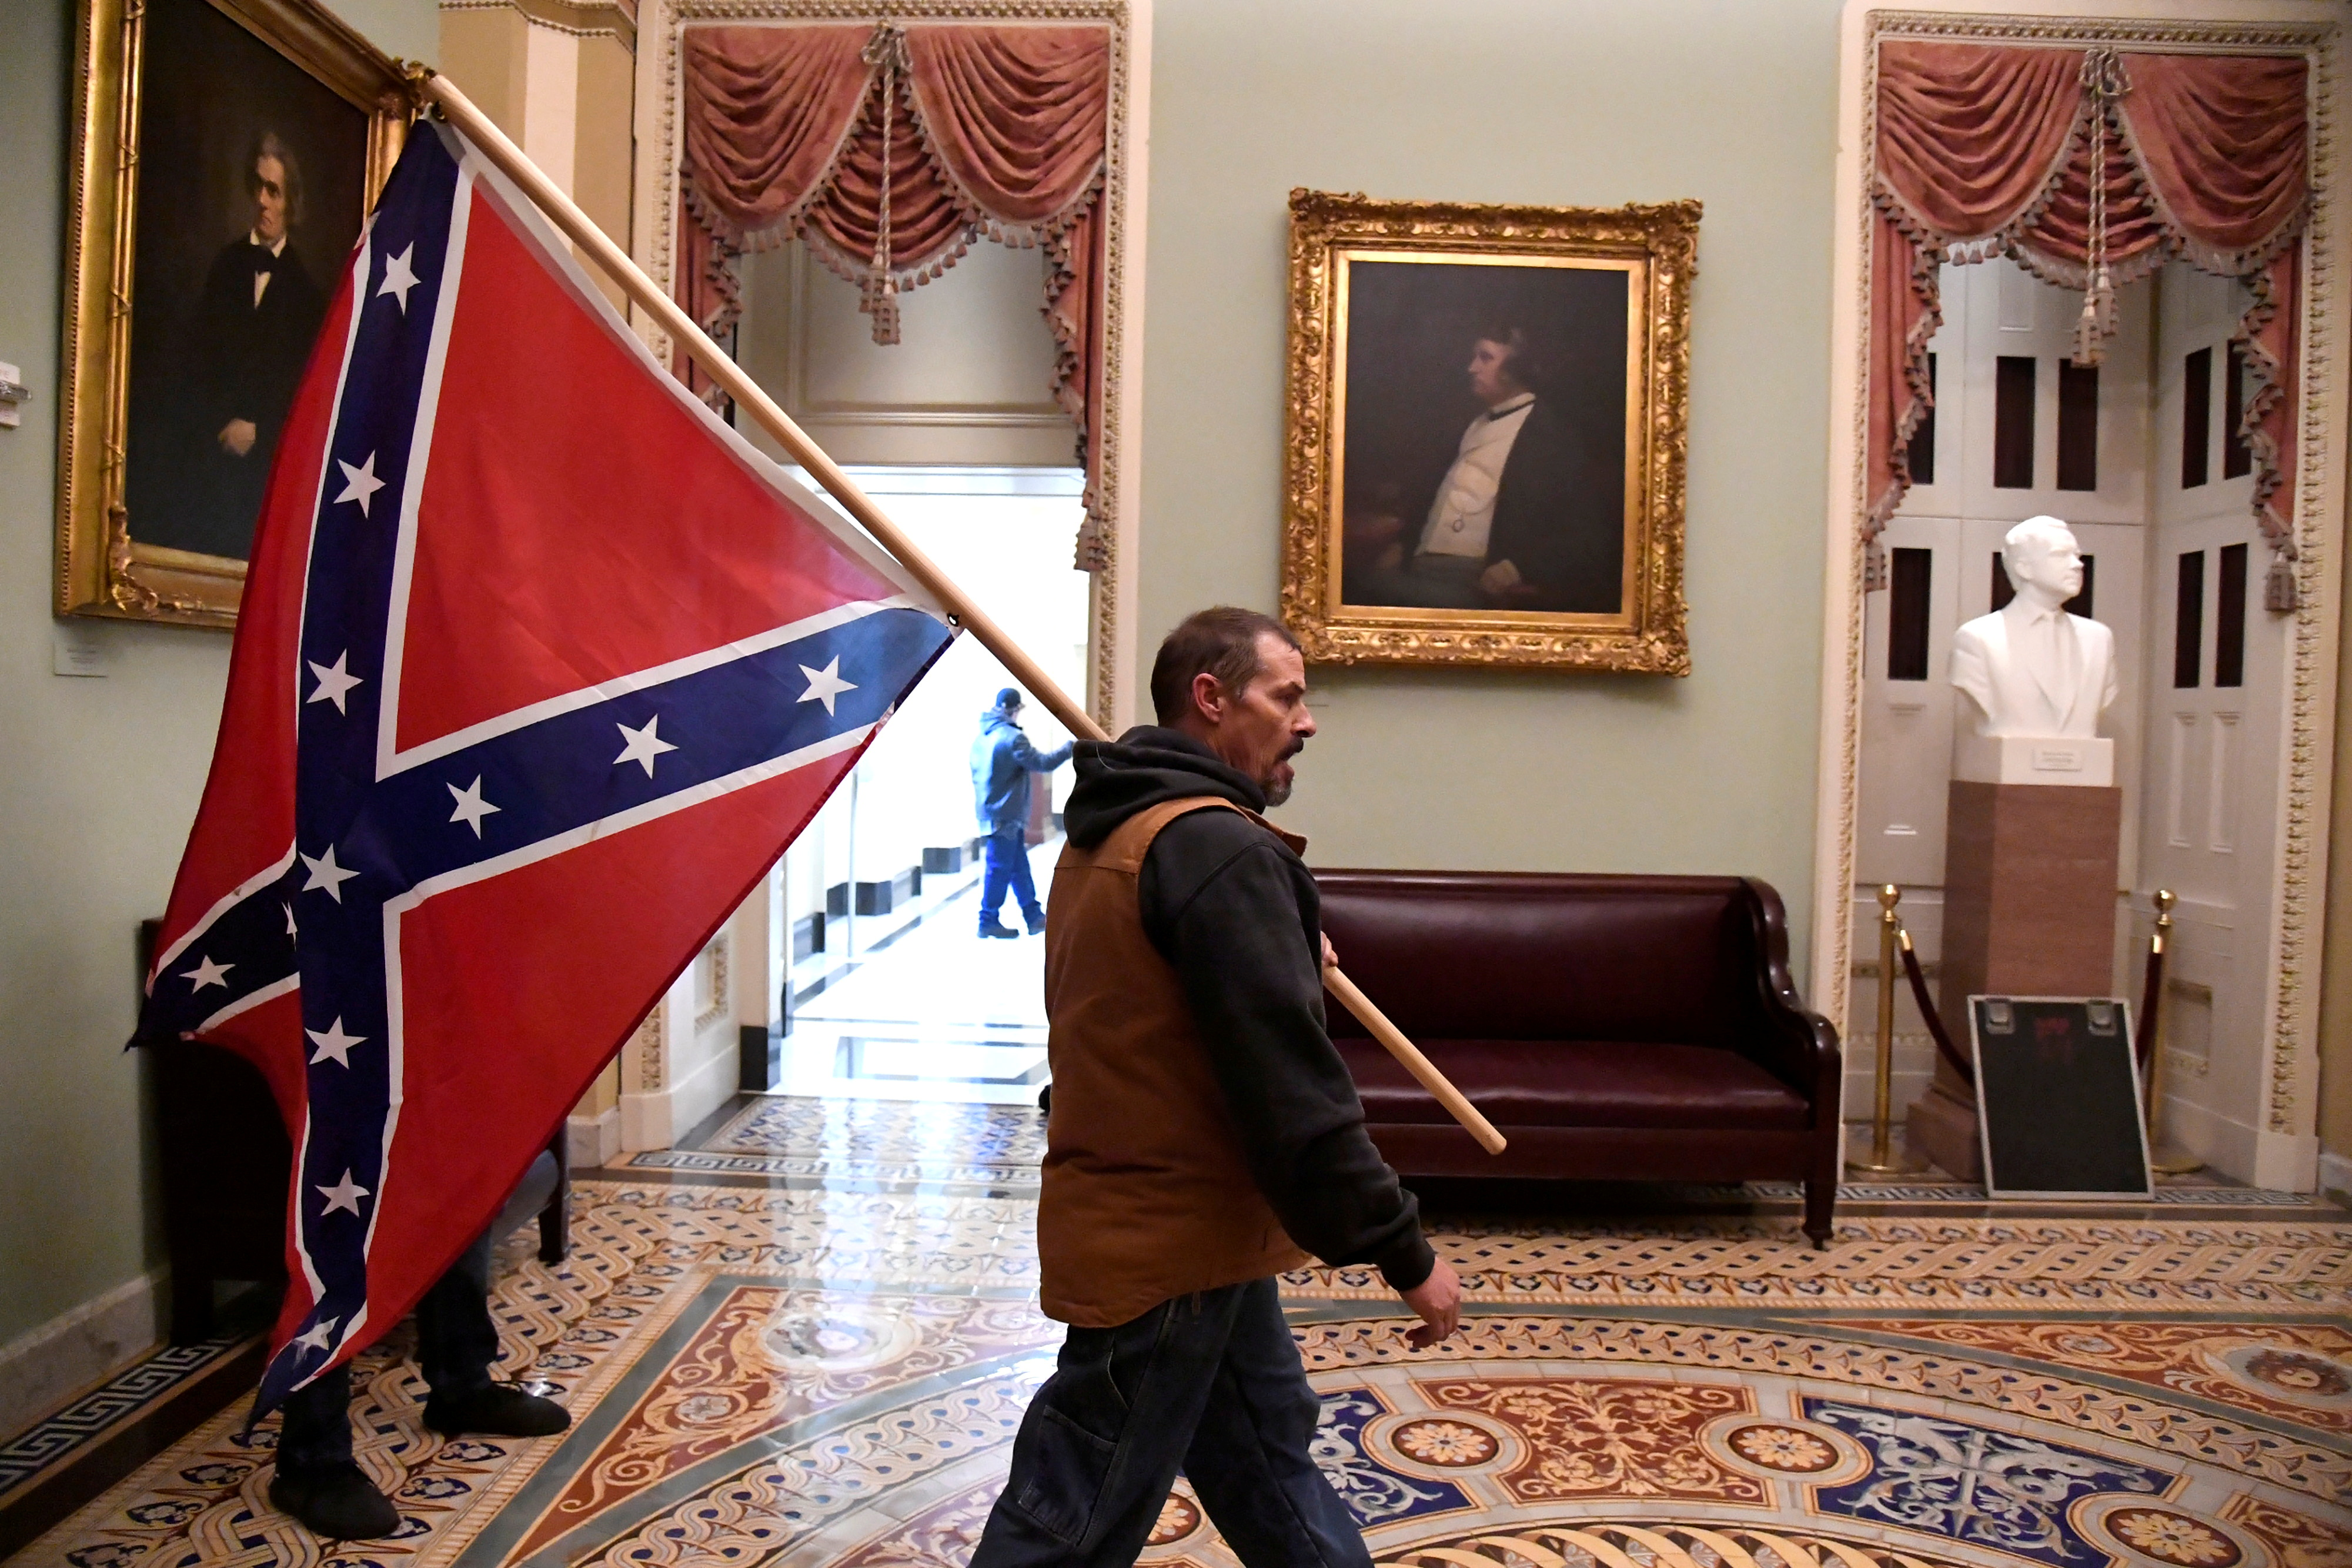 A supporter of President Donald Trump carries a Confederate battle flag on the second floor of the U.S. Capitol near the entrance to the Senate after breaching security defenses, in Washington, U.S., January 6, 2021. A portrait of abolitionist senator Charles Sumner of Massachusetts, who was savagely beaten on the Senate floor after delivering a speech criticizing slavery in 1856, hangs above the couch.        REUTERS/Mike Theiler     TPX IMAGES OF THE DAY